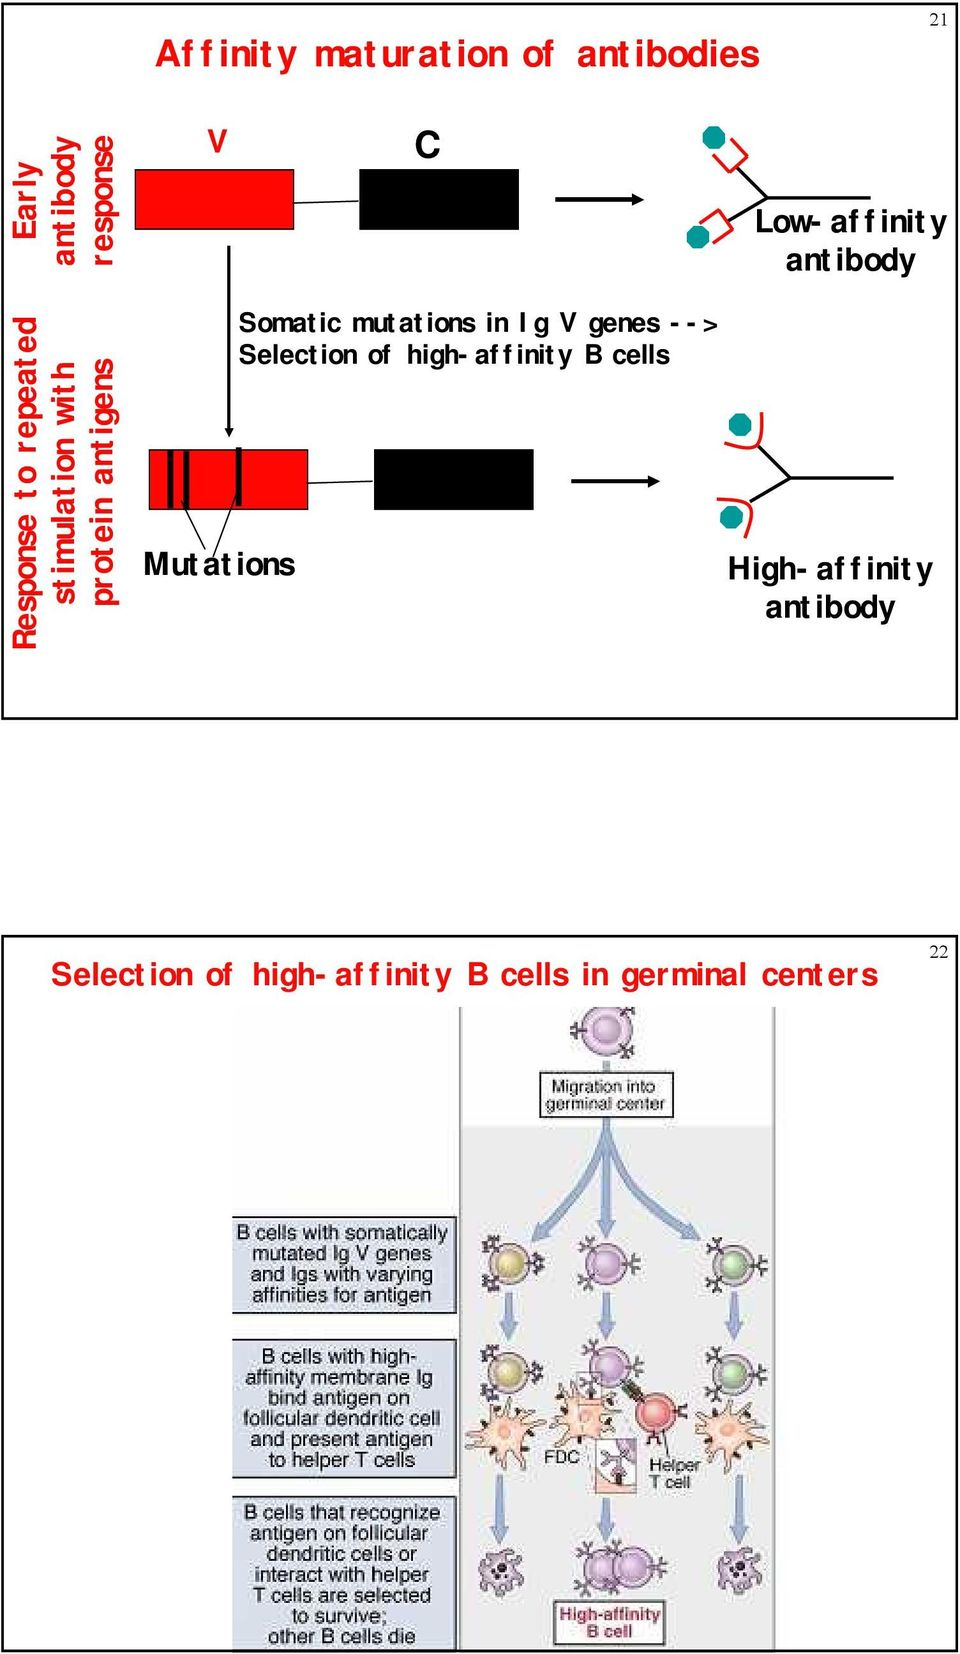 Somatic mutations in Ig V genes --> Selection of high-affinity B cells